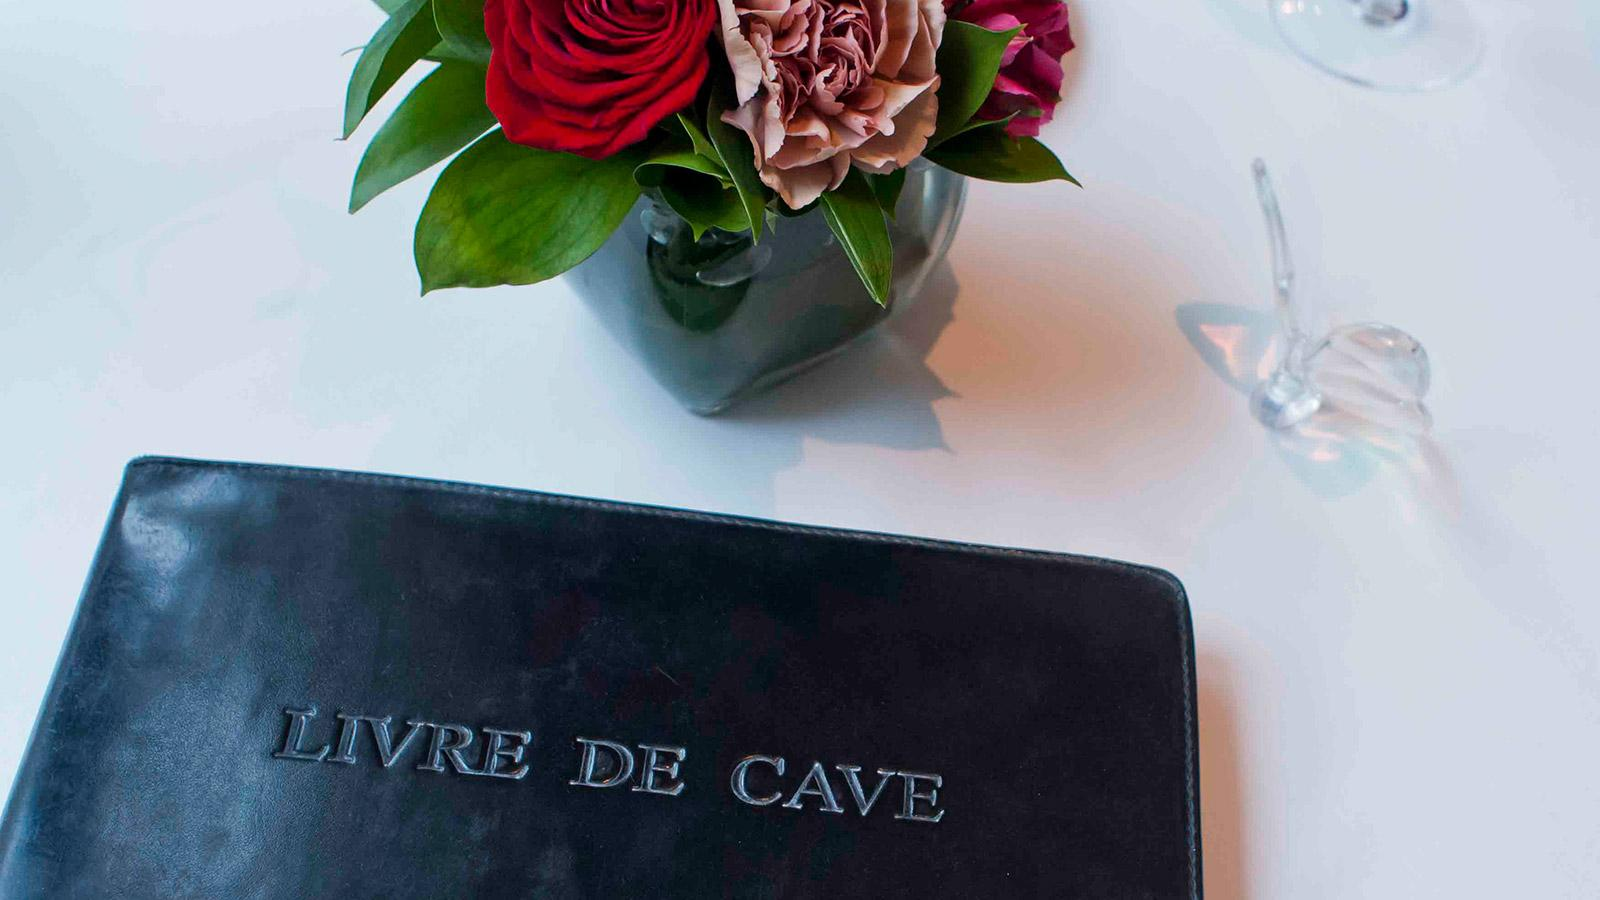 Complete, accurate information for each wine gives guests confidence in ordering.